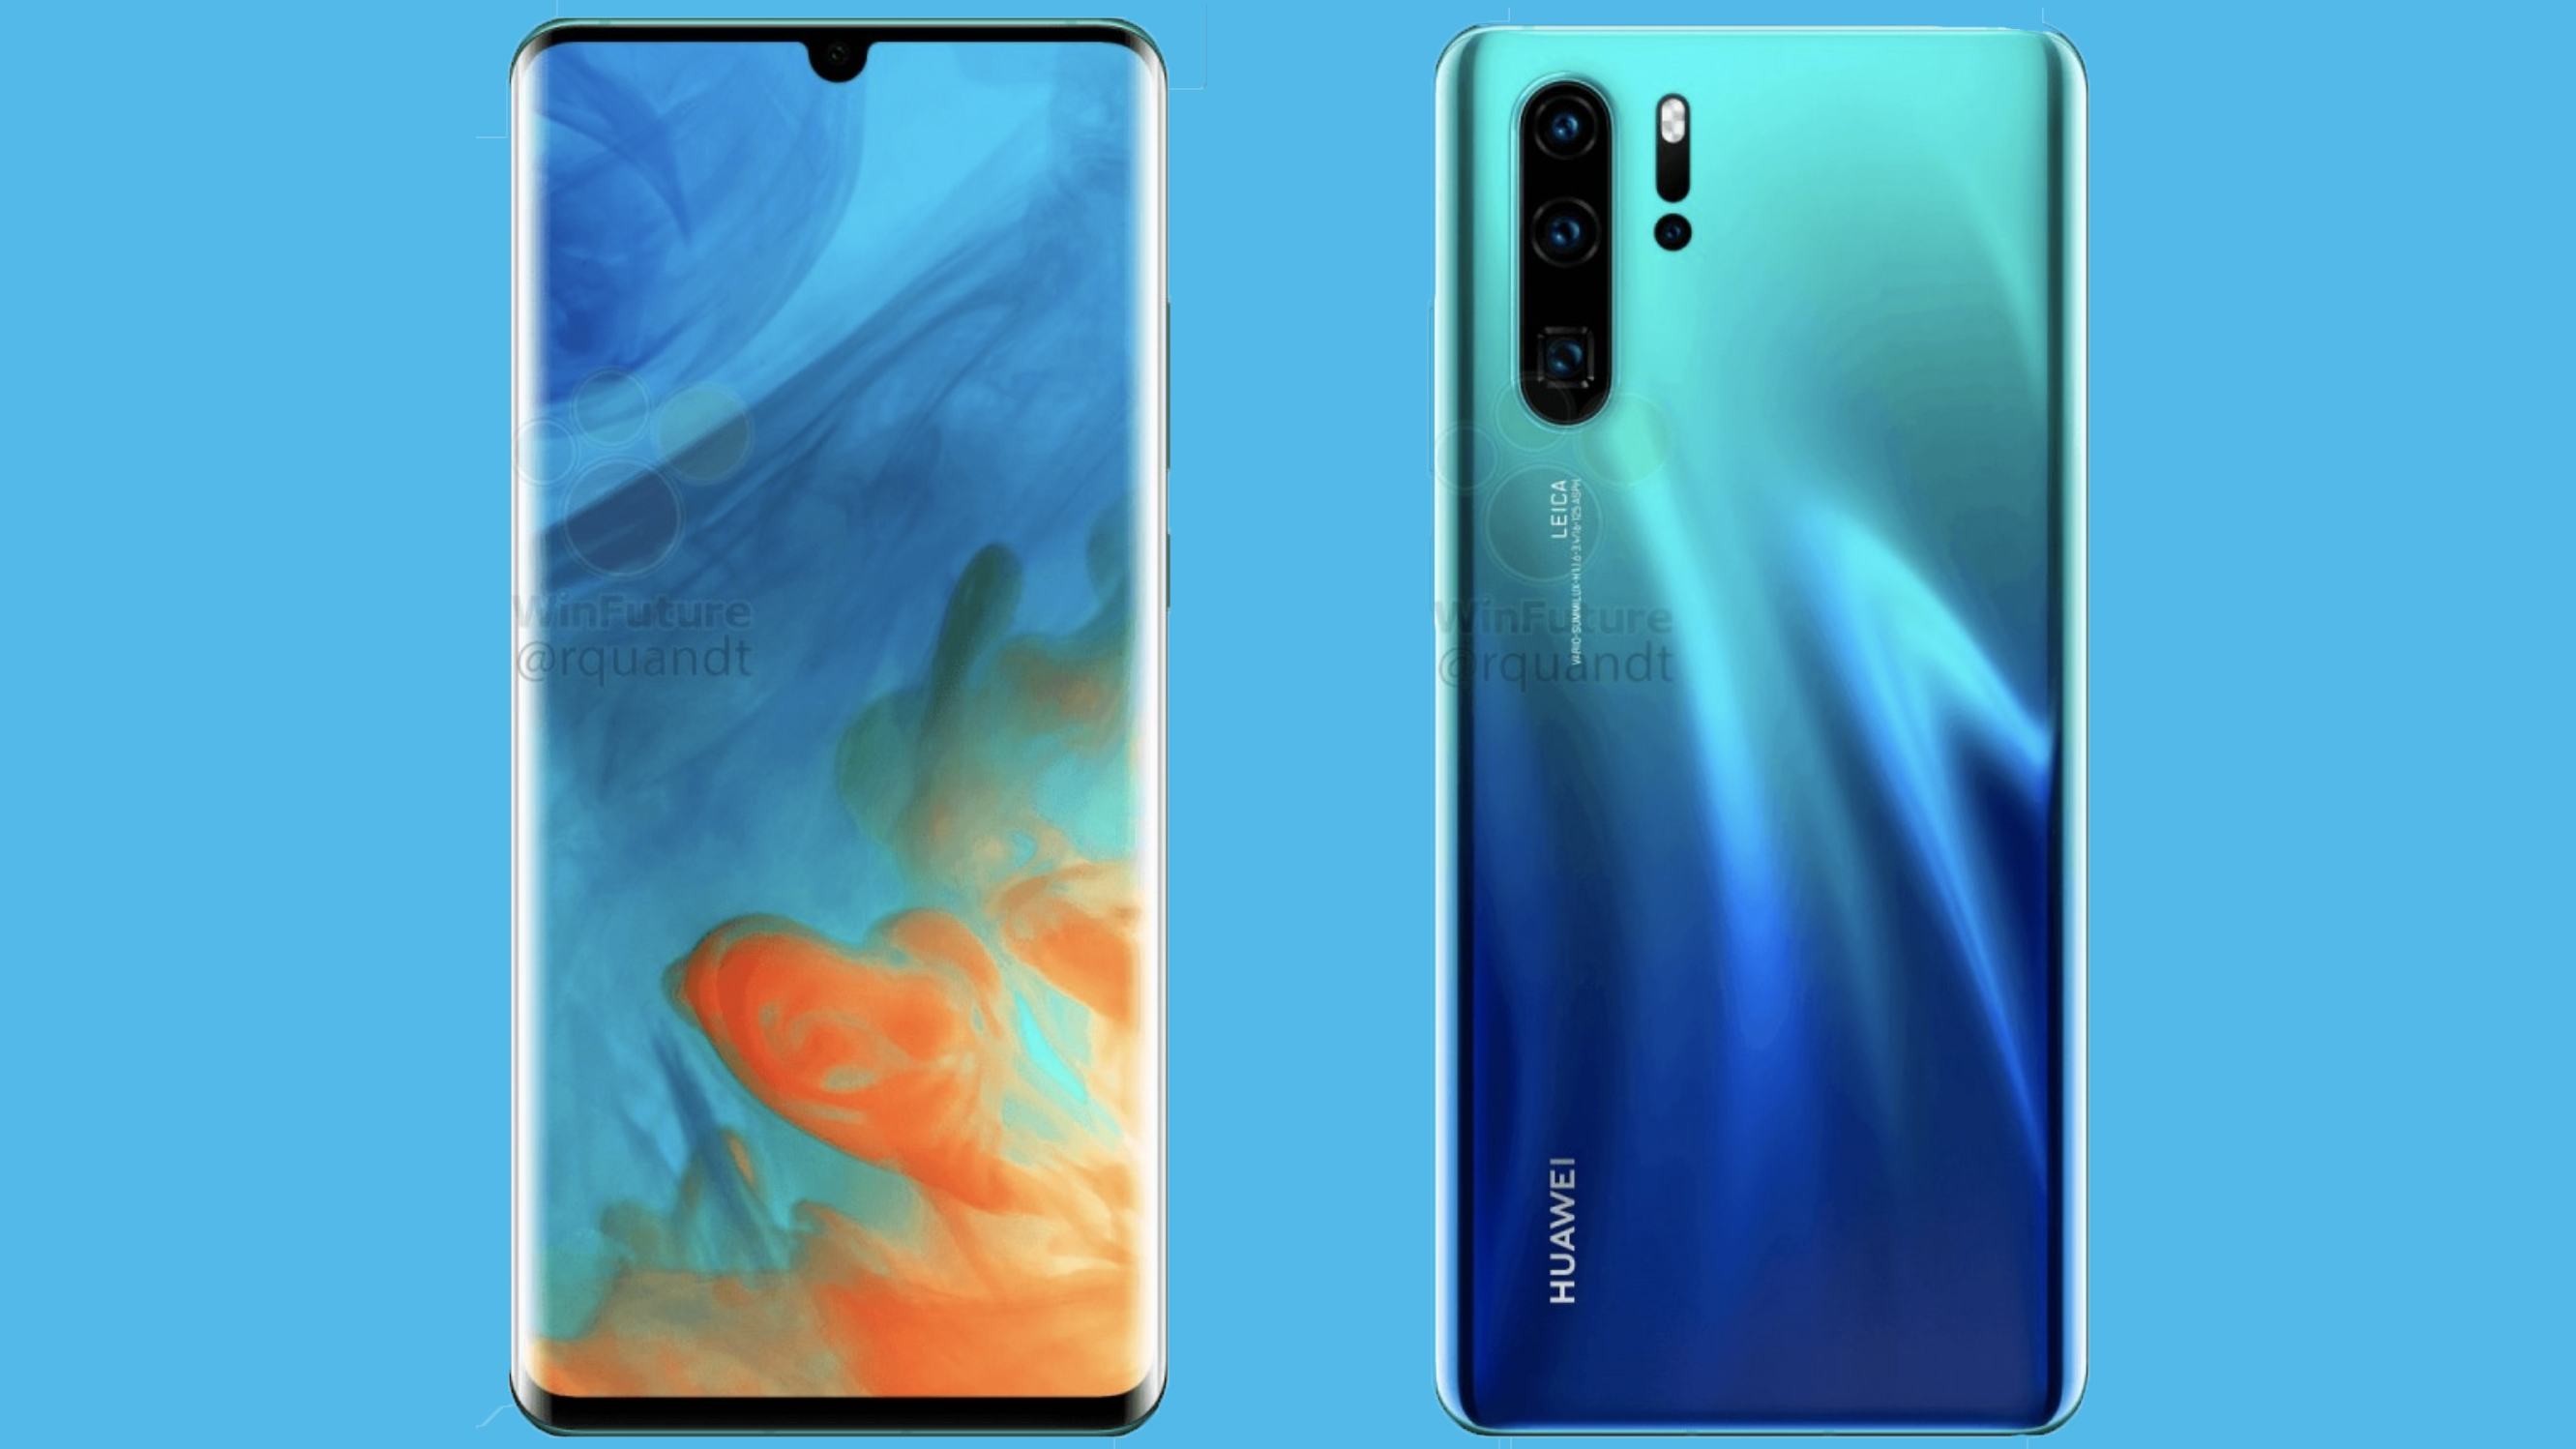 Huawei P30 Pro leaked pictures show off four cameras and